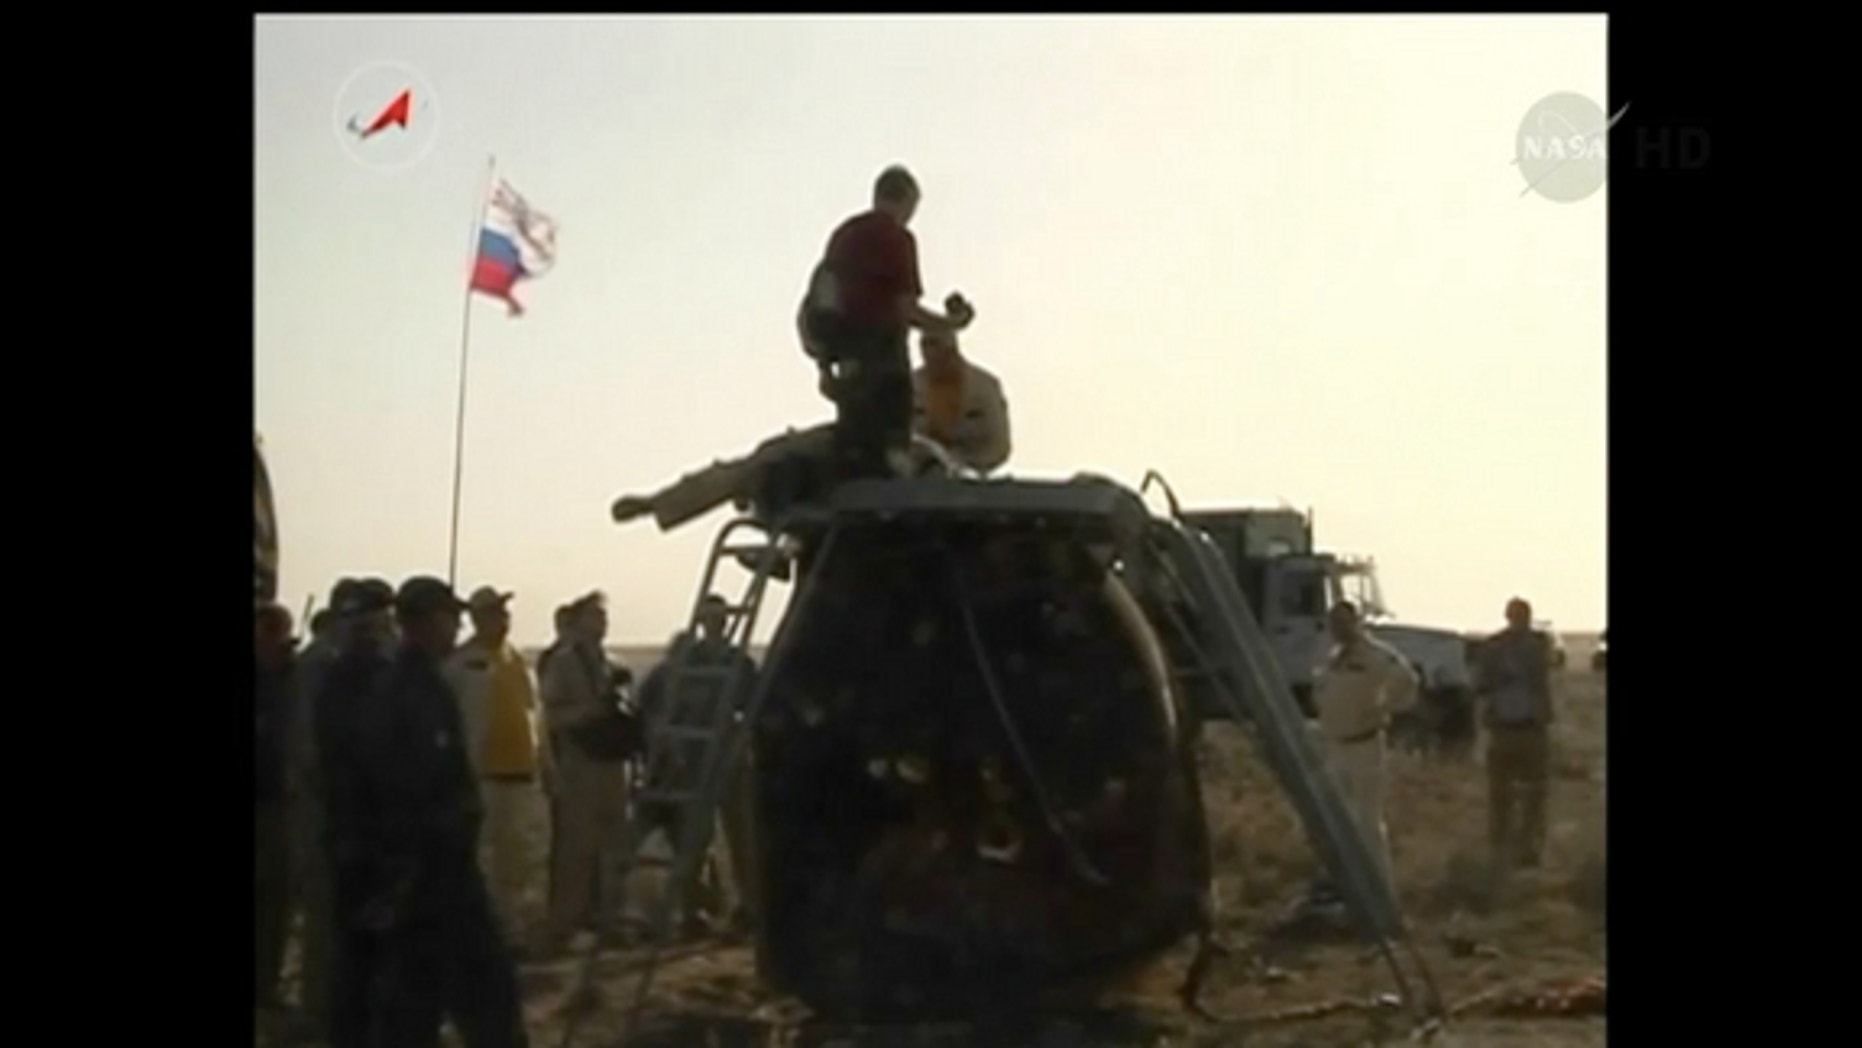 A Russian Soyuz capsule carrying three astronauts rests on the ground after landing in Kazakhstan on May 13, 2014.